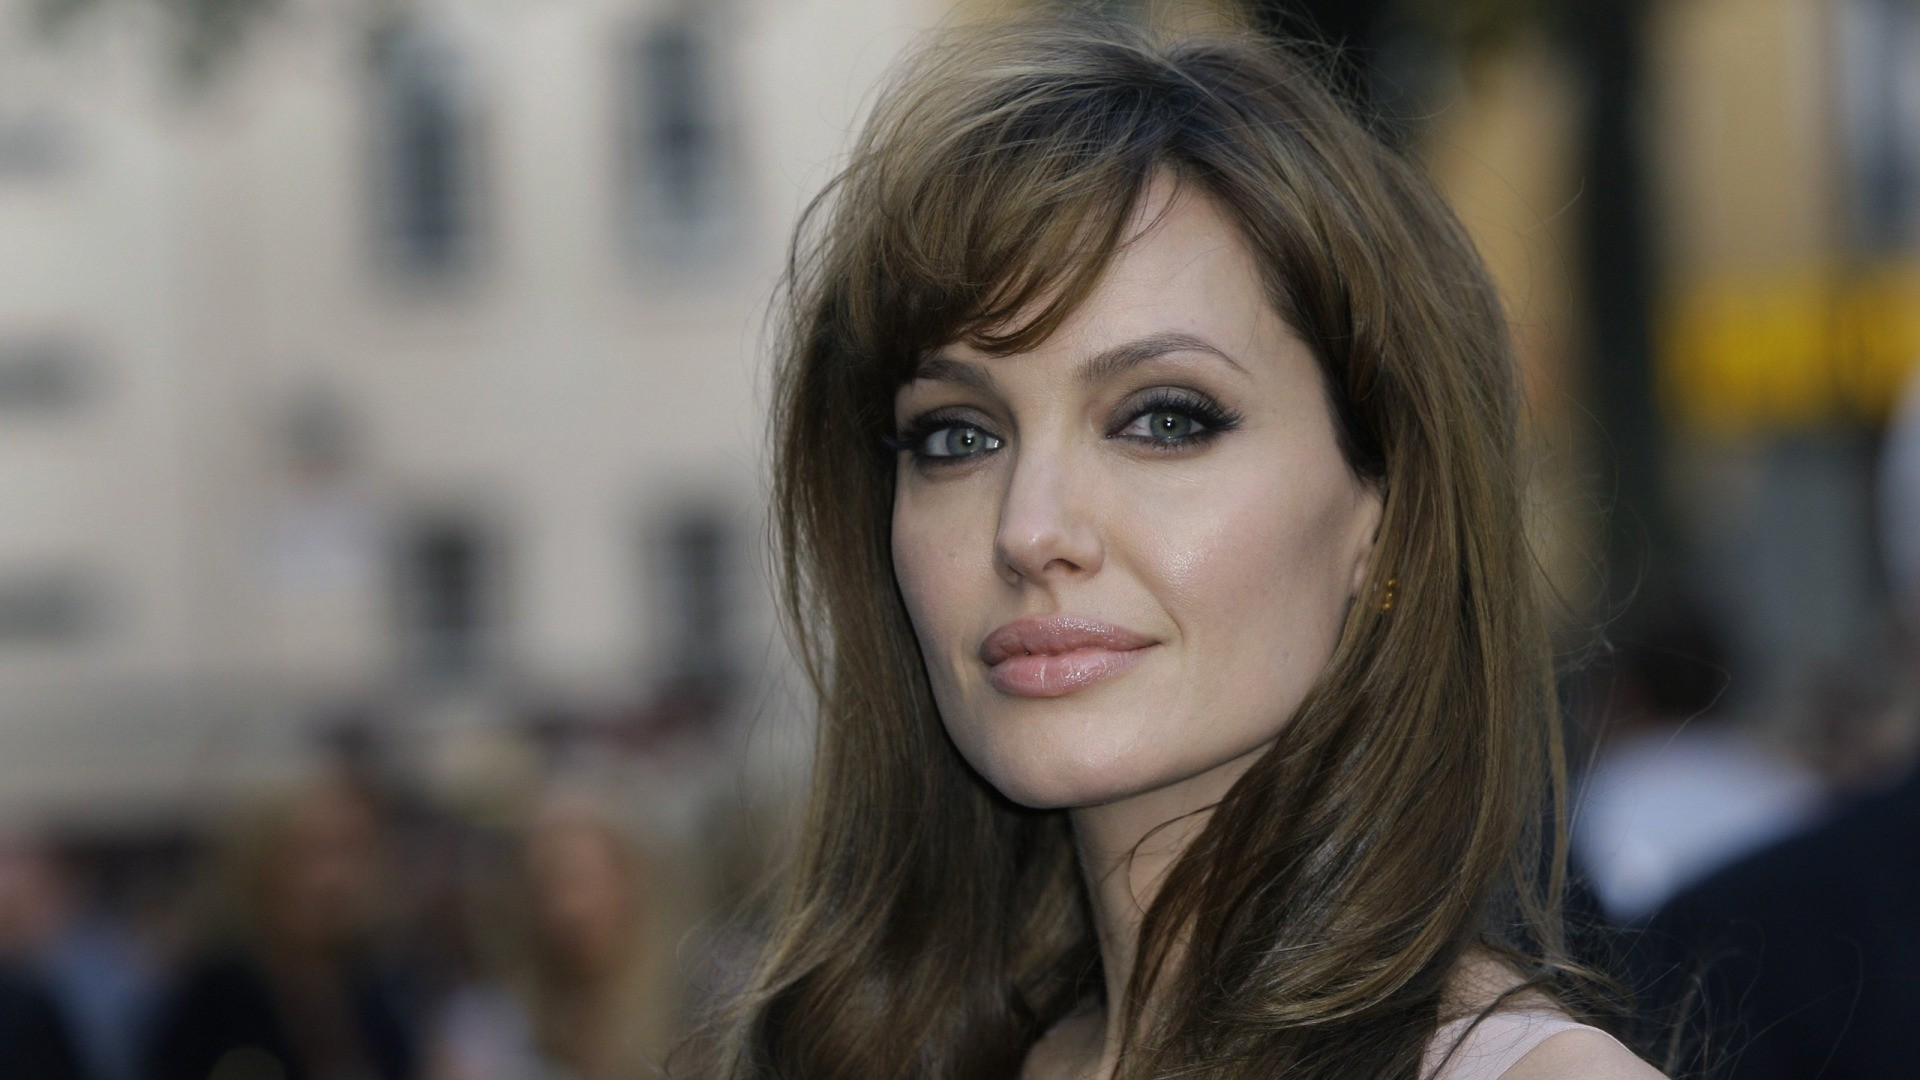 Angelina Jolie actress angelina jolie brunette face girl gray 1920x1080